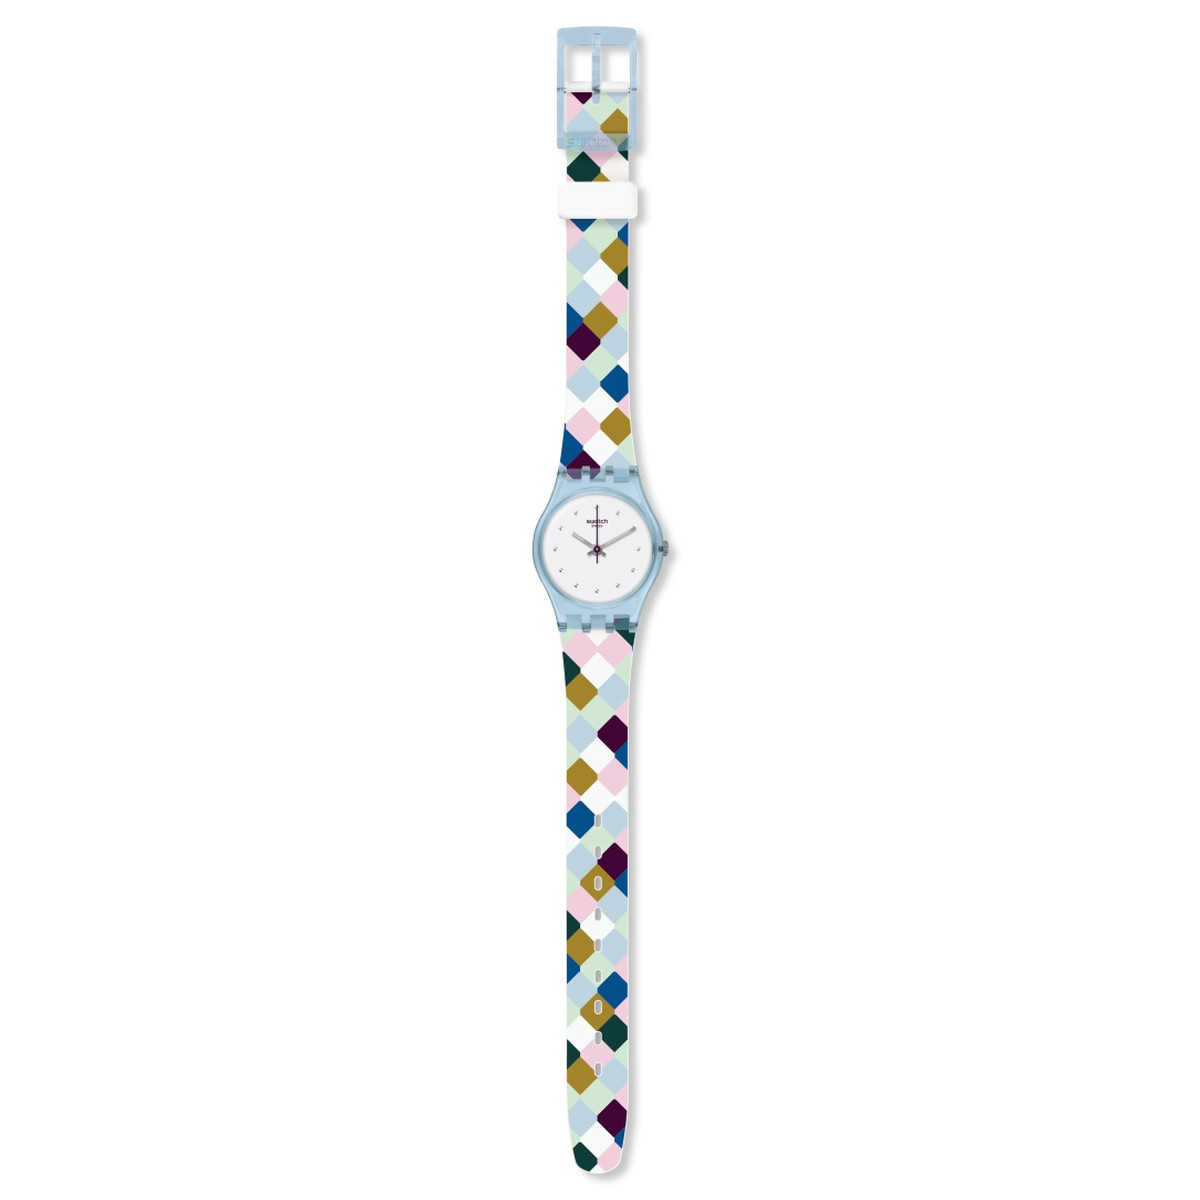 Montre Swatch Arle Queen femme silicone multicol - vue VD1